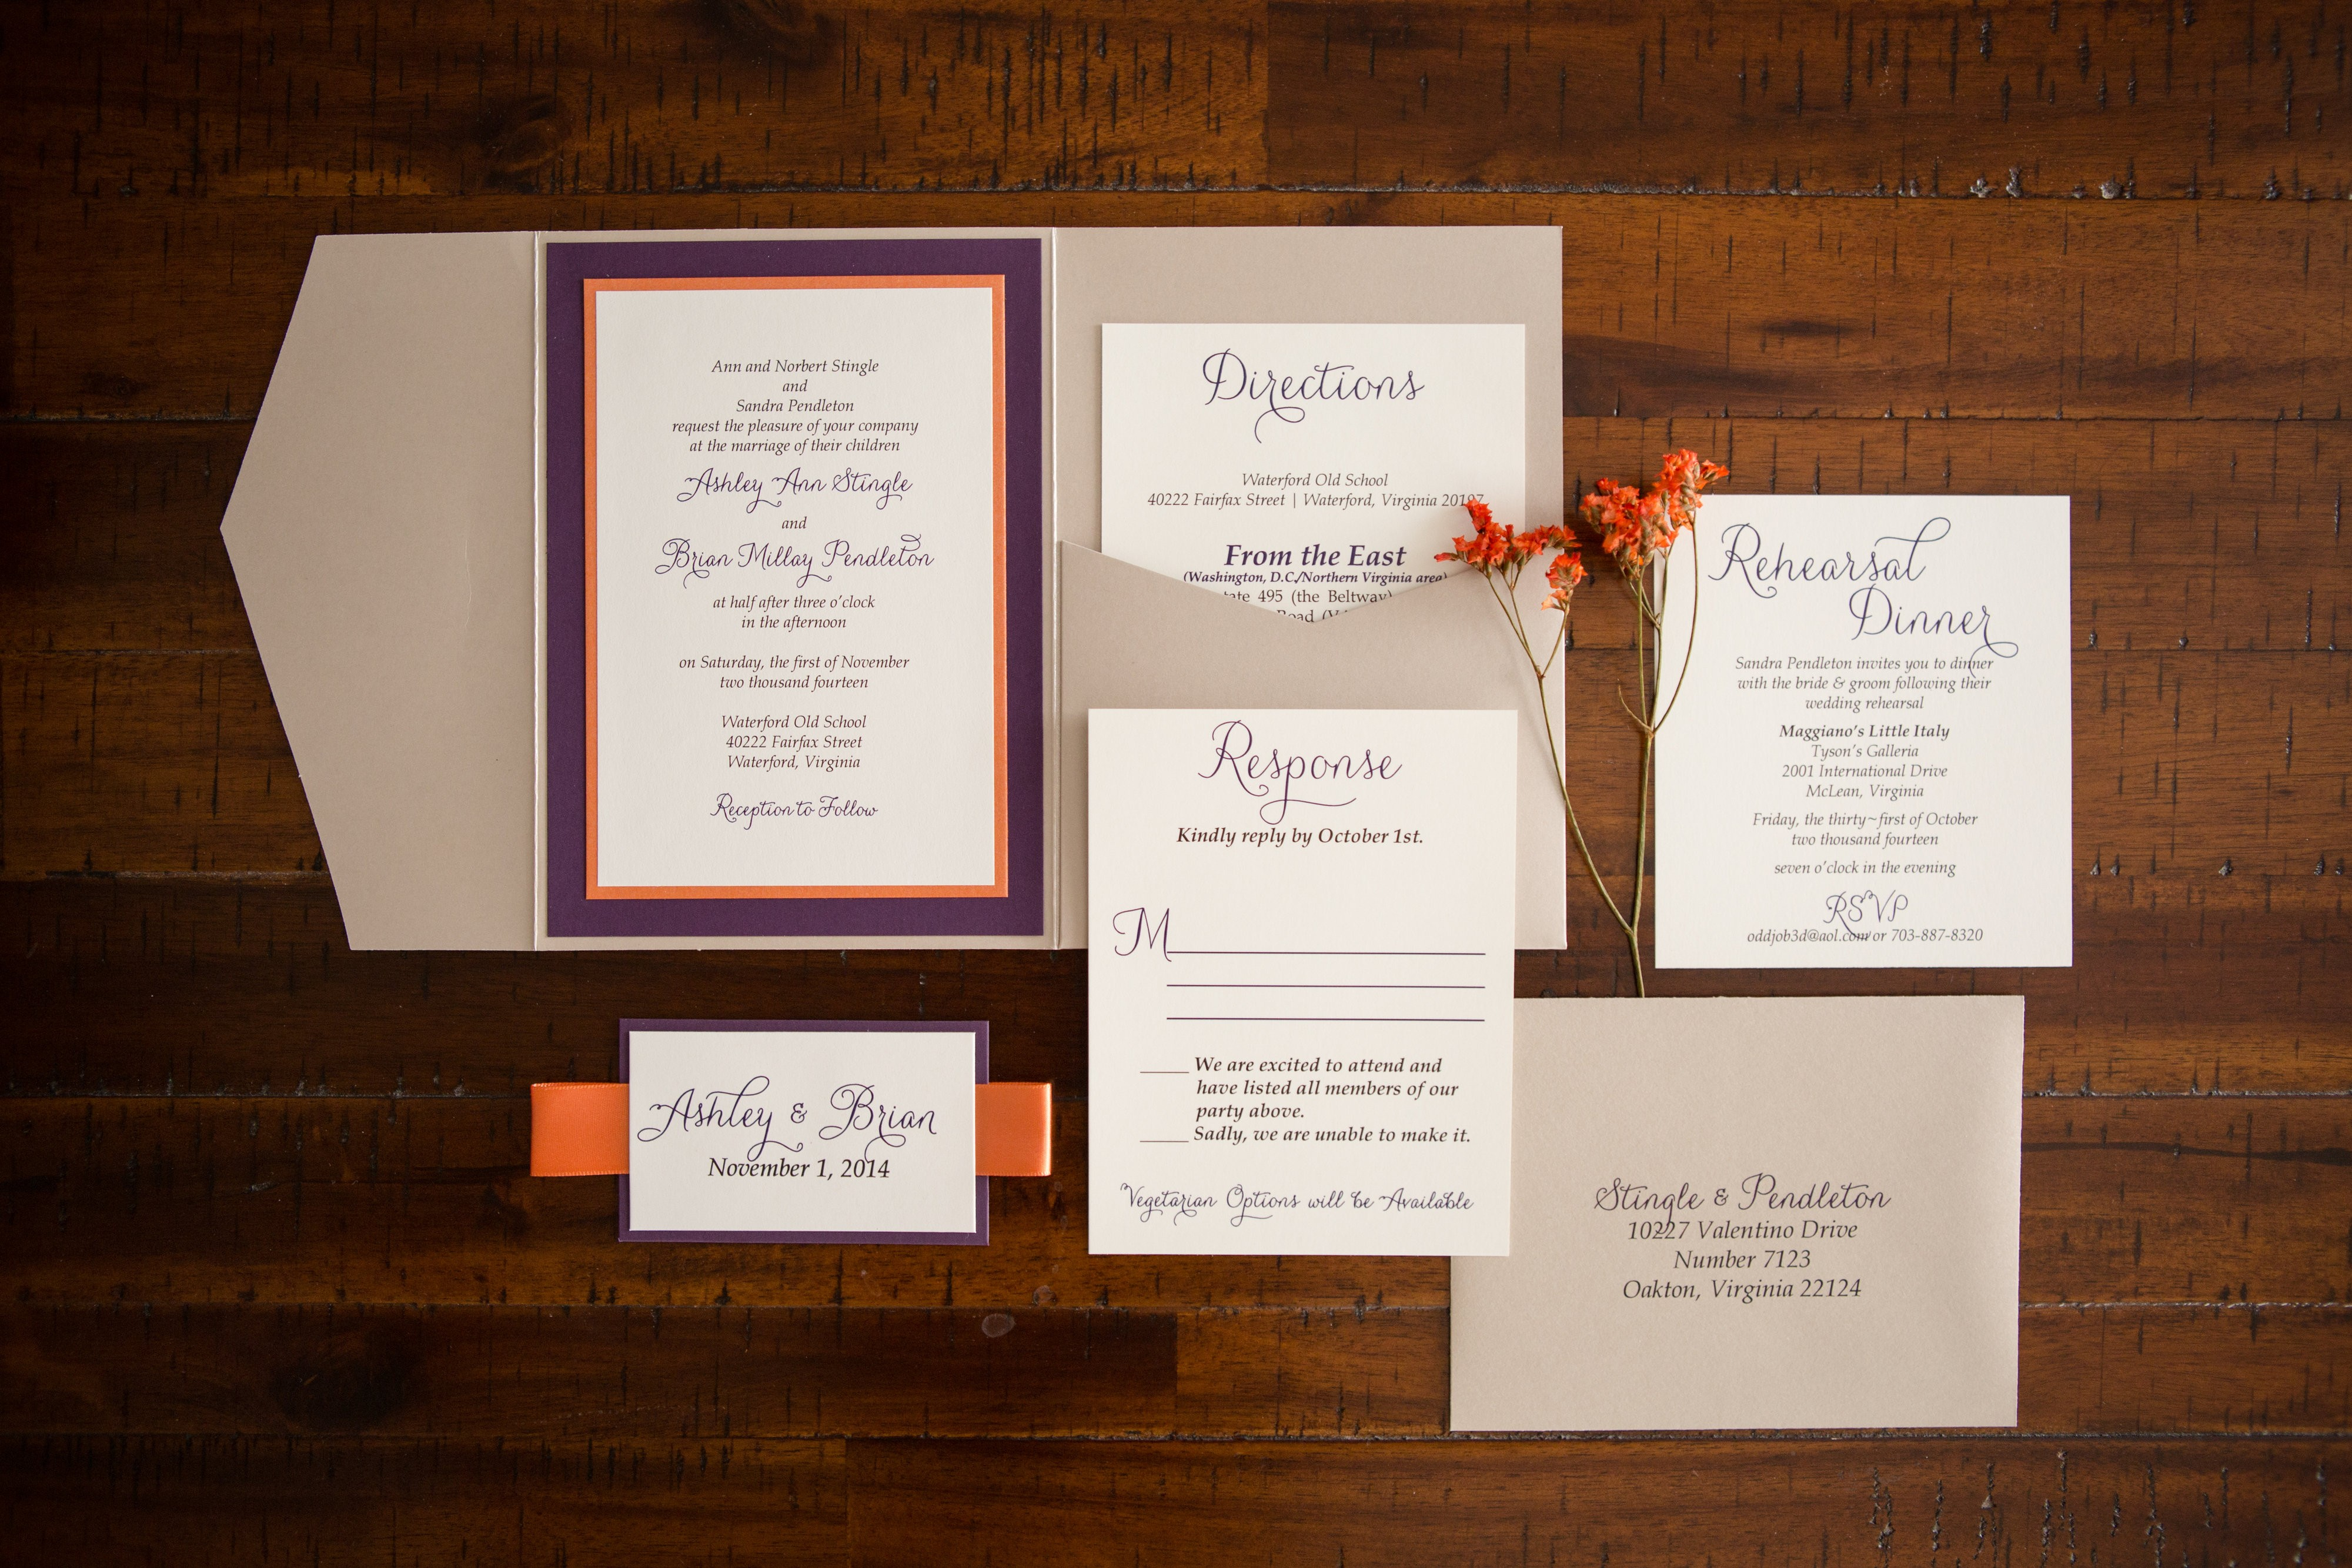 Ashley's Wedding Invitation Suite, Festive Fall colors, orange, purple, beige